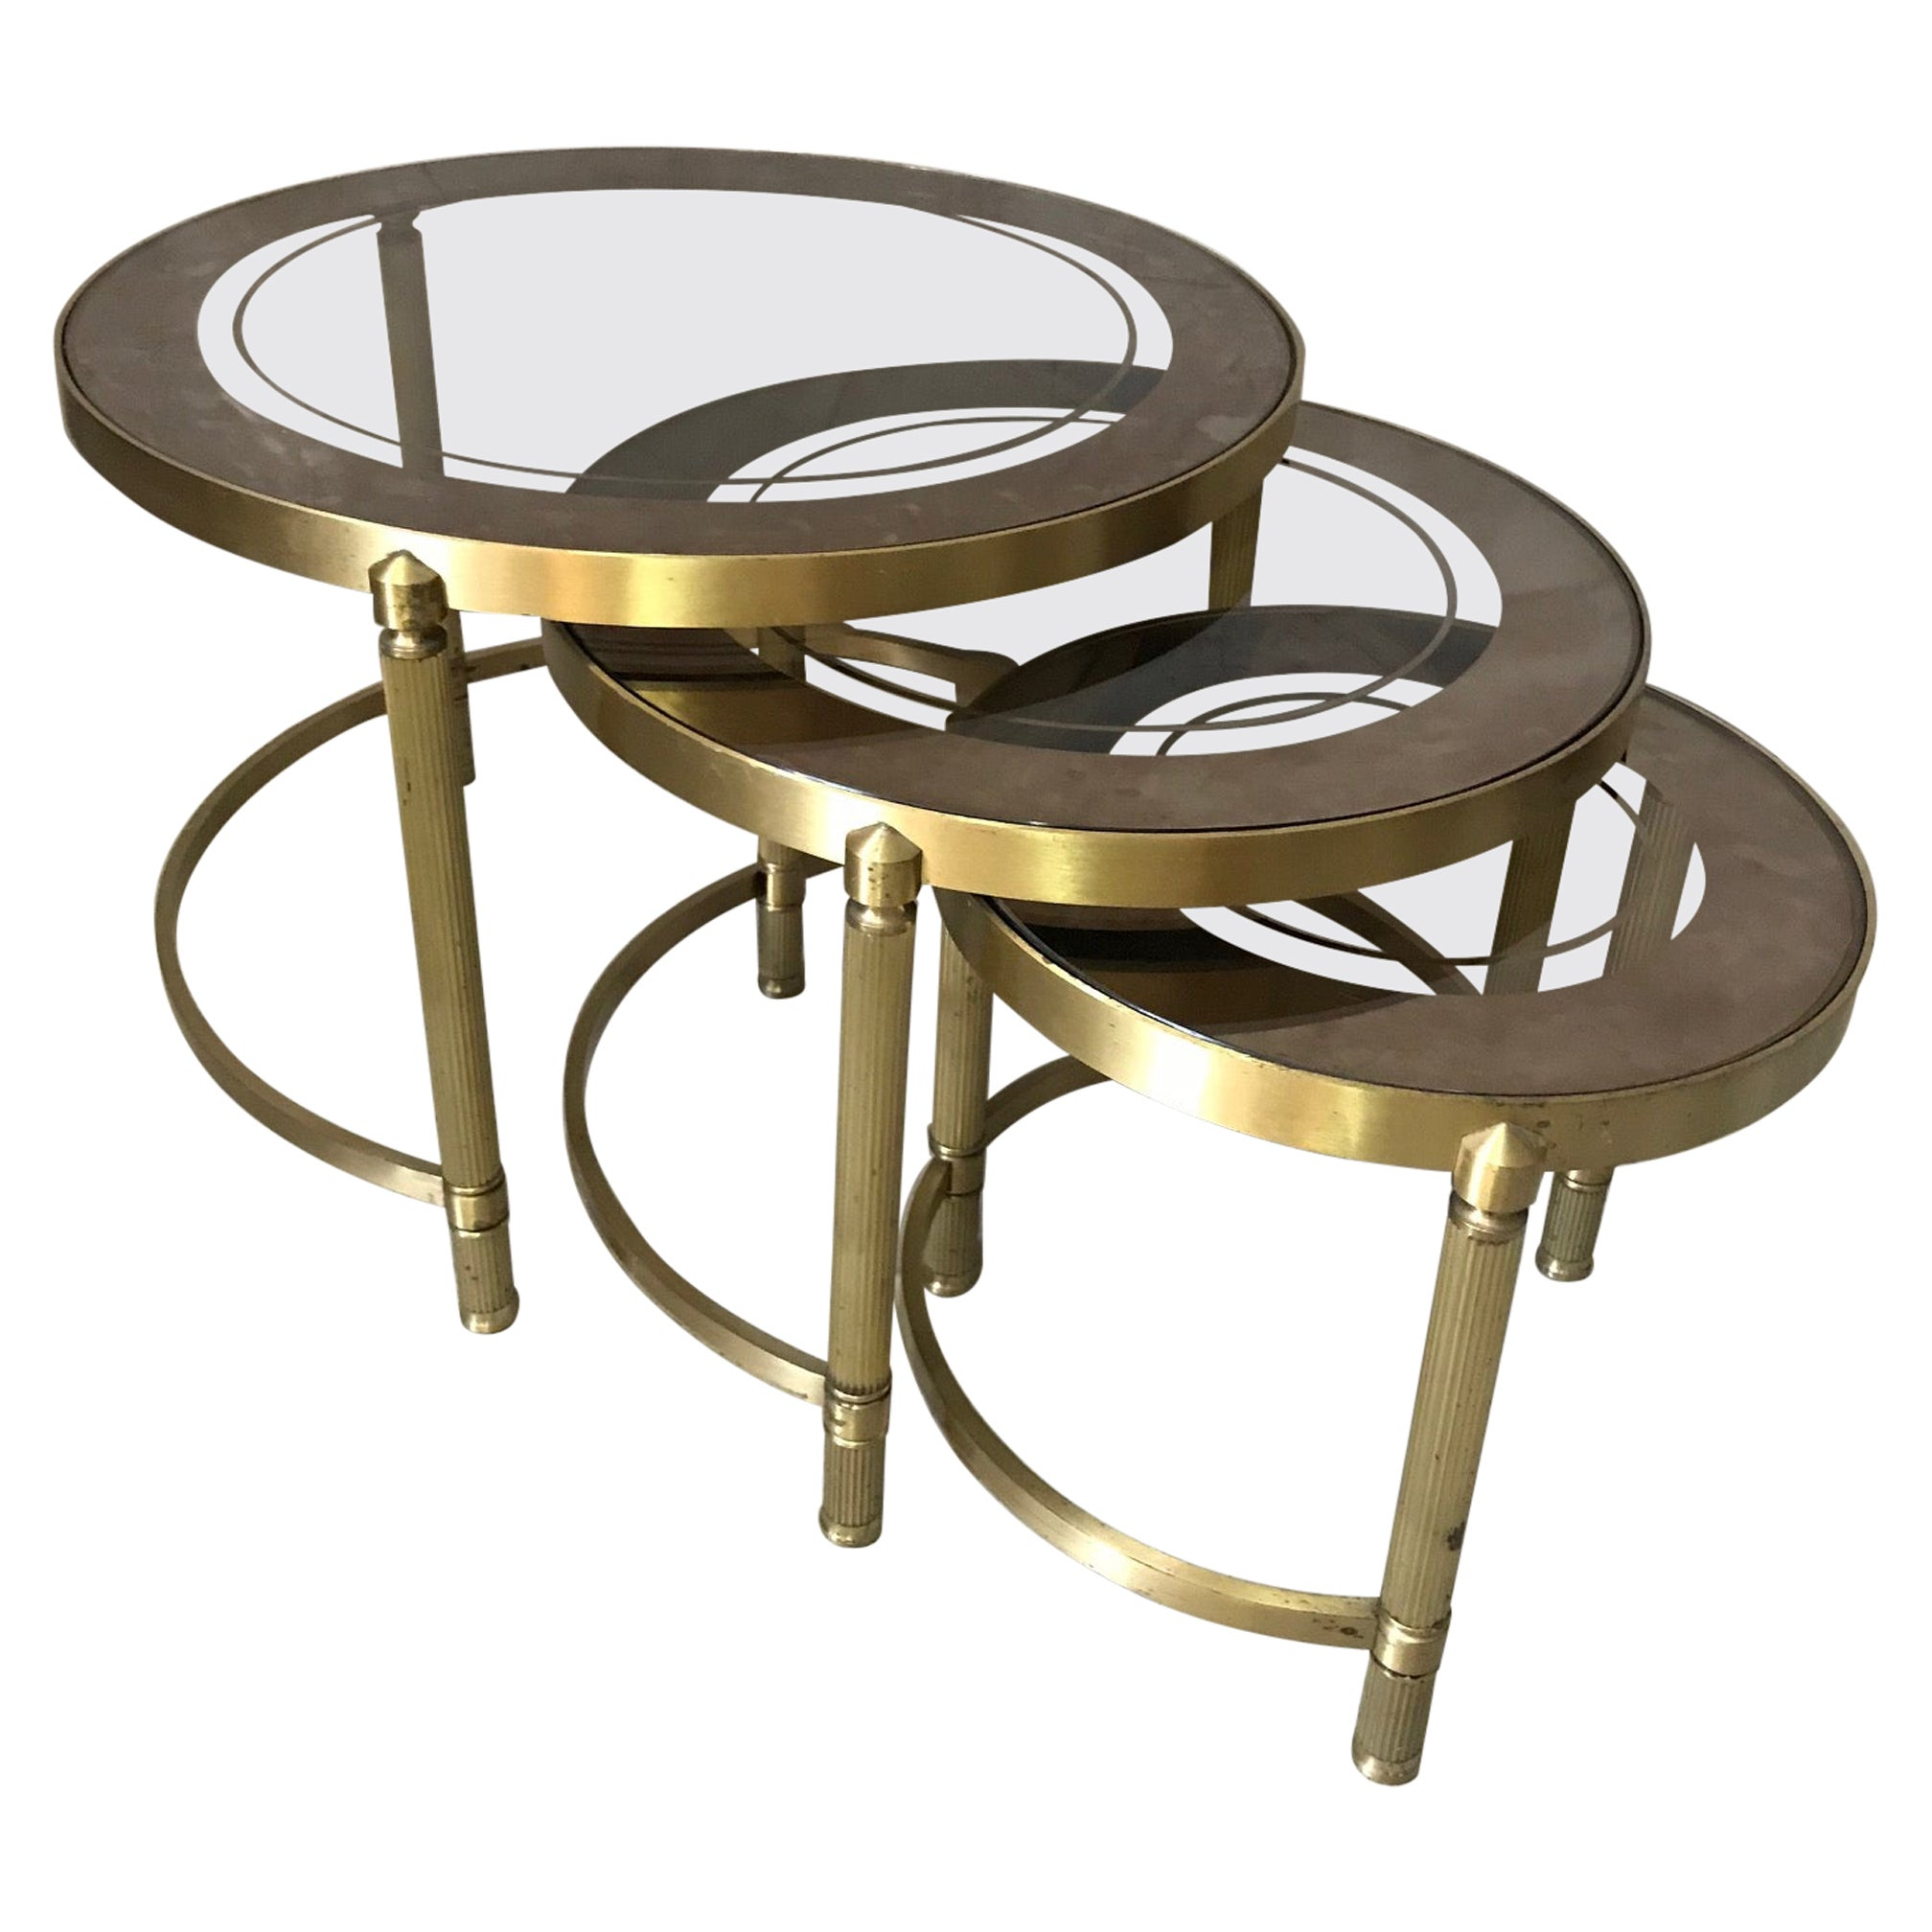 20th Century French Gilded Brass and Mercury Glass Nesting Tables, 1950s